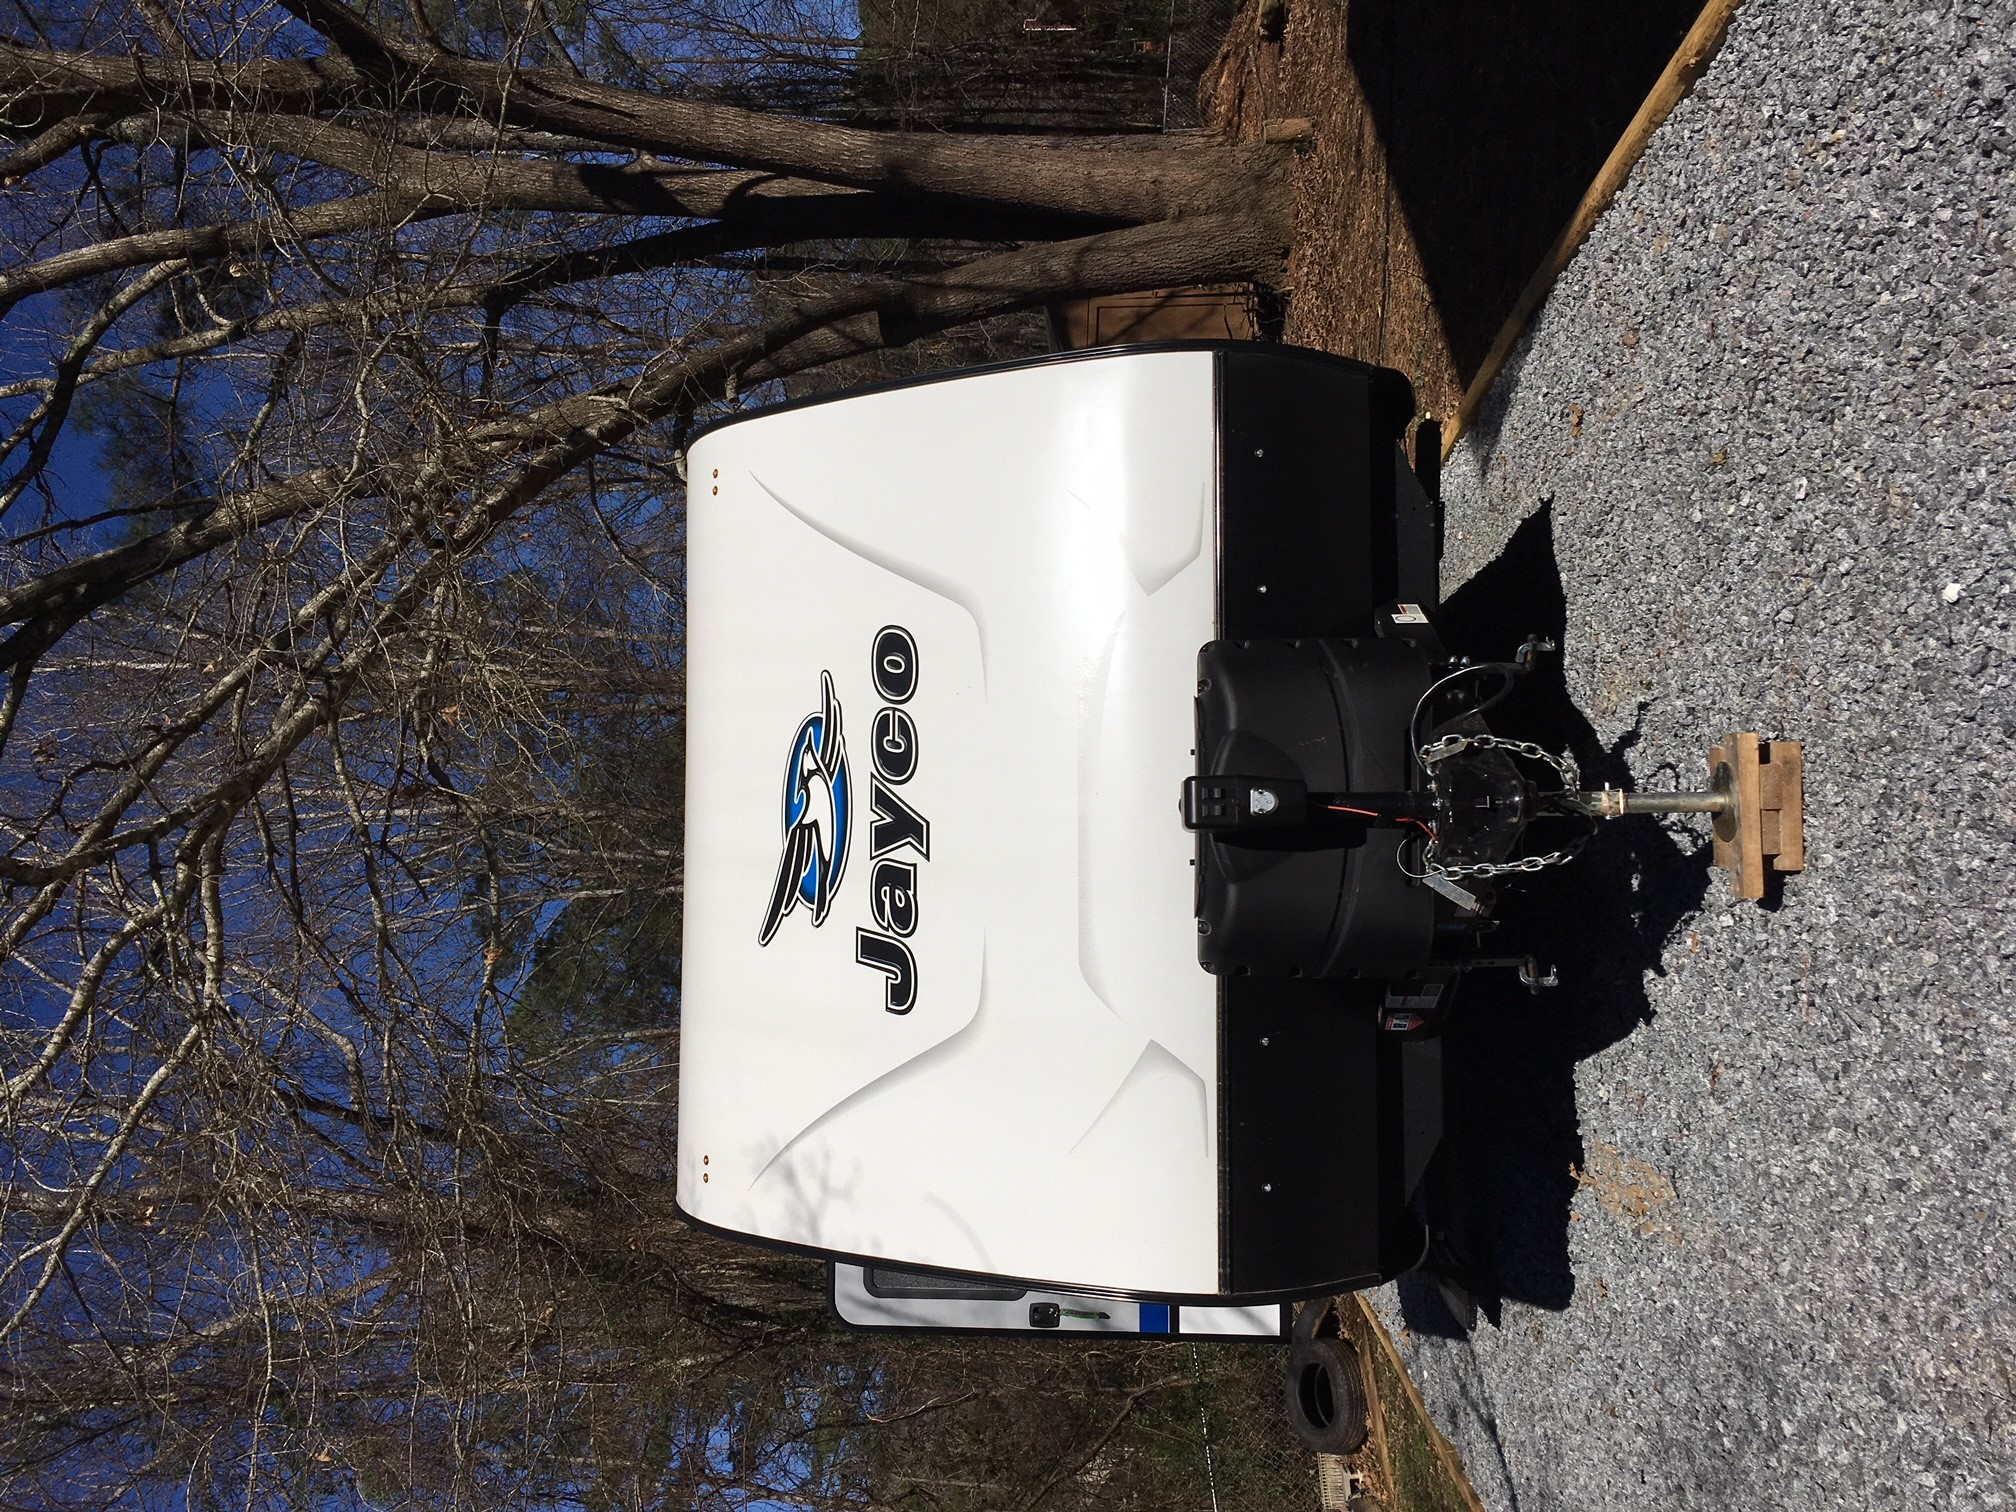 2019 Jayco Jay Feather 24BHM - take your next trip with Murphy!